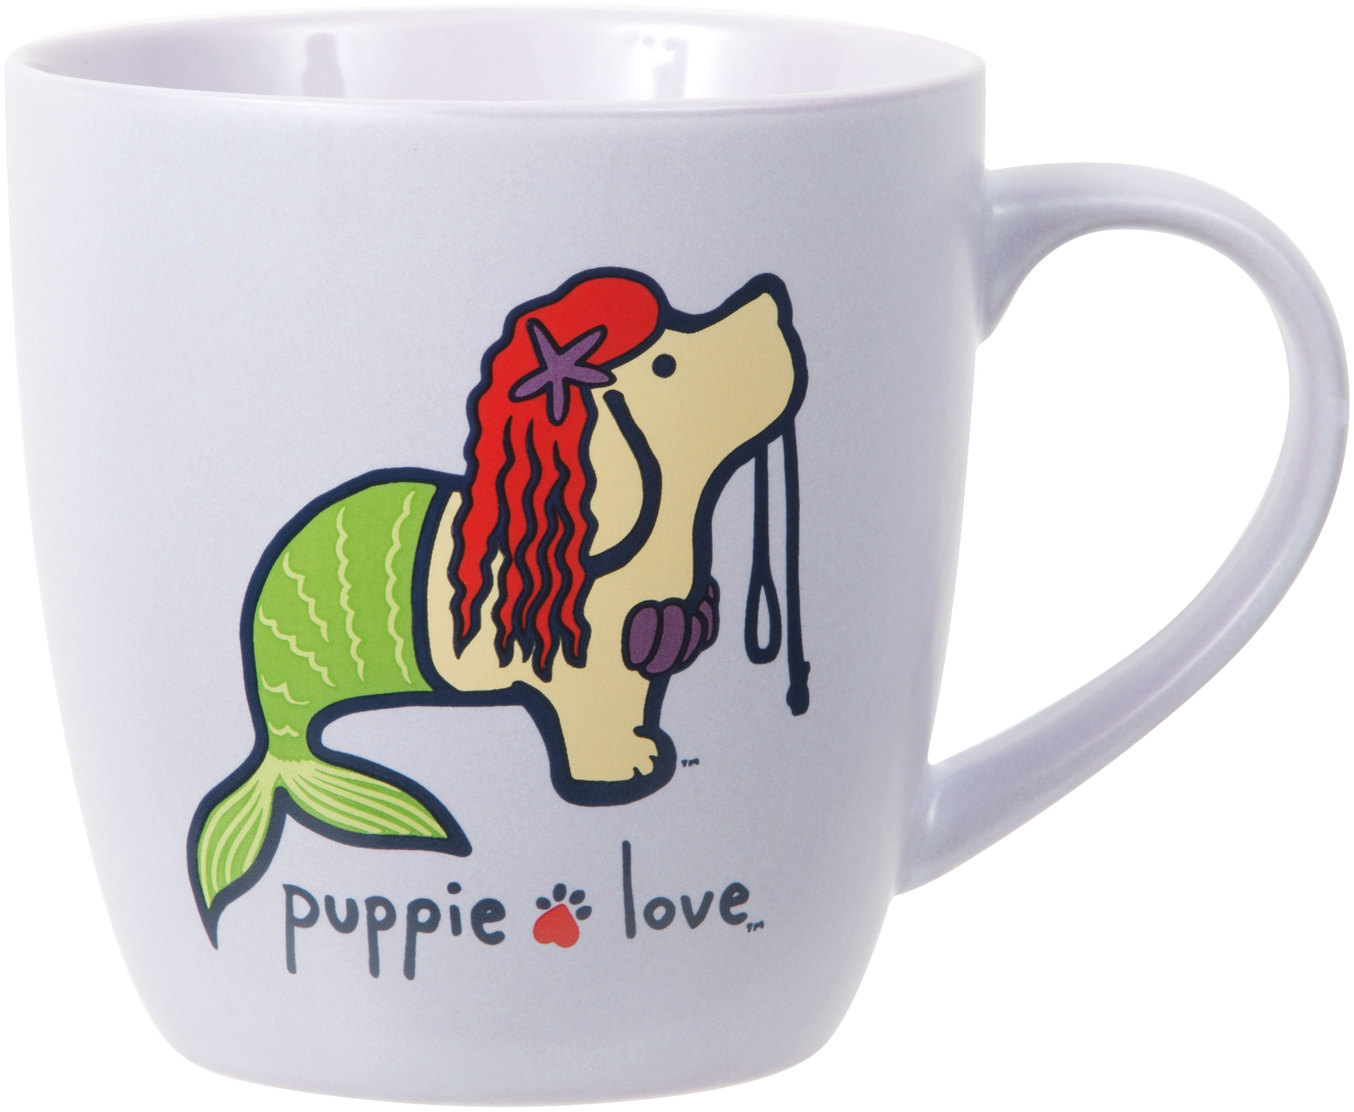 Mermaid by Puppie Love - Mermaid - 17 oz Cup